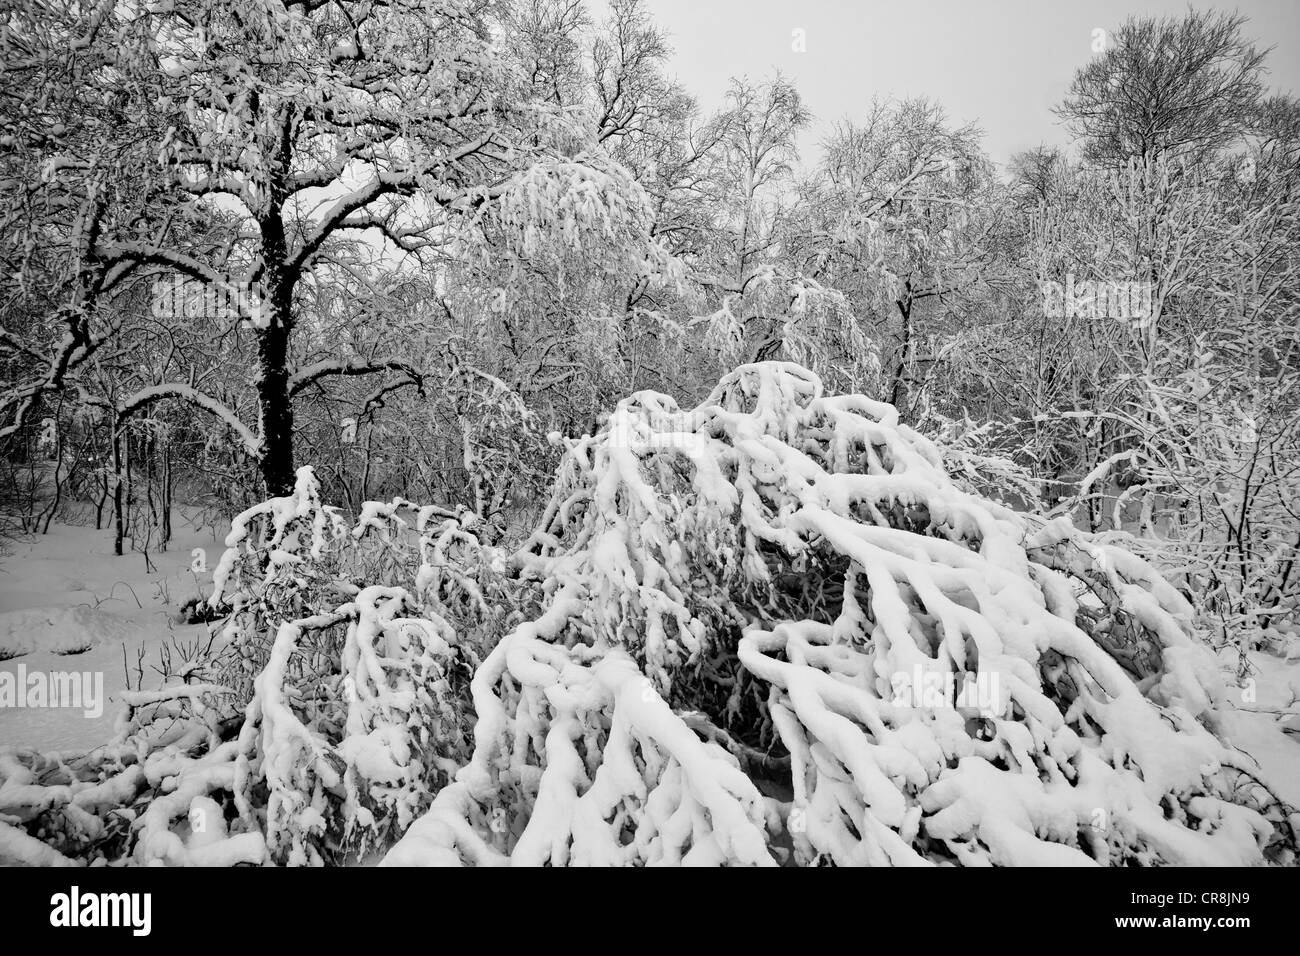 Snow covered trees in the Romsdalen valley, Rauma kommune, Møre og Romsdal,, Norway. - Stock Image